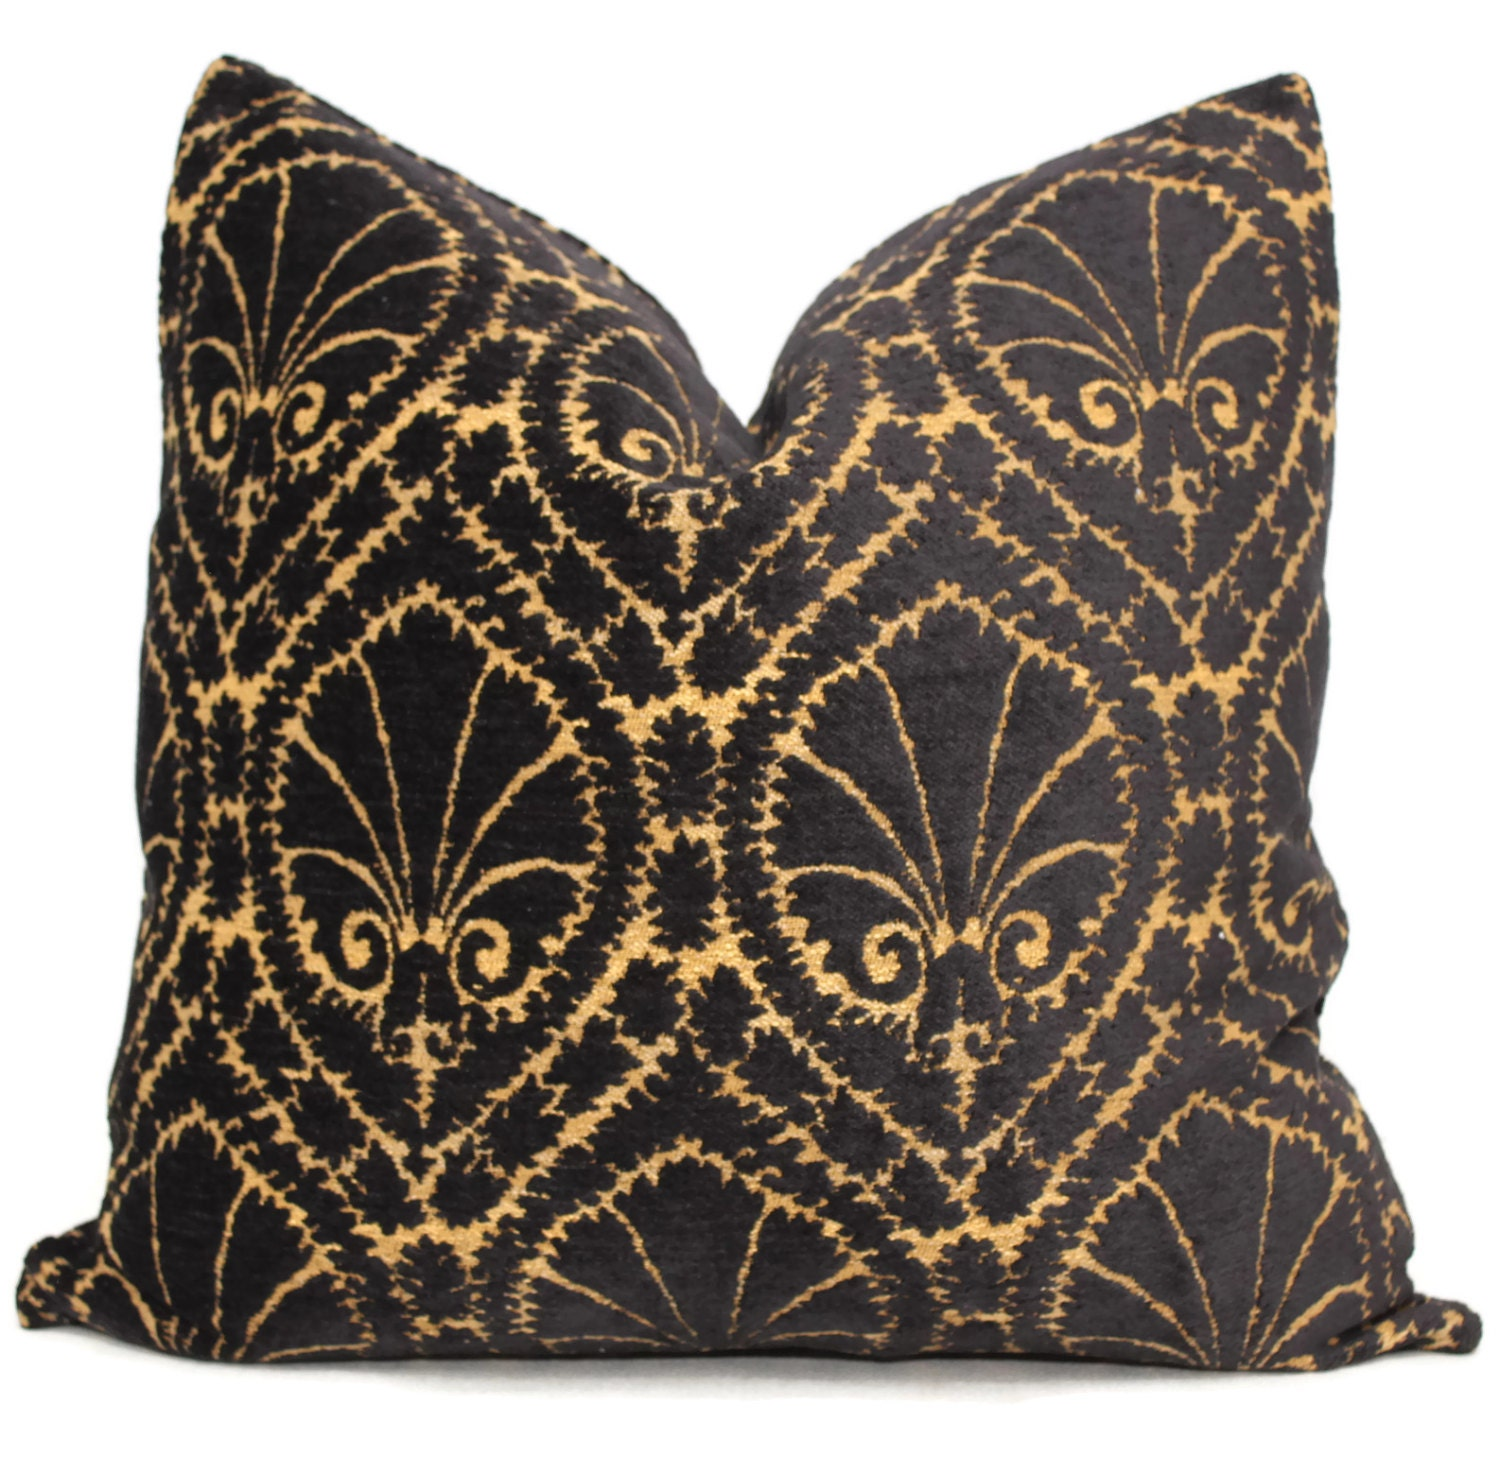 Decorative Pillows Black And Gold : Decorative Pillow Cover Black and Gold Highland Court by PopOColor